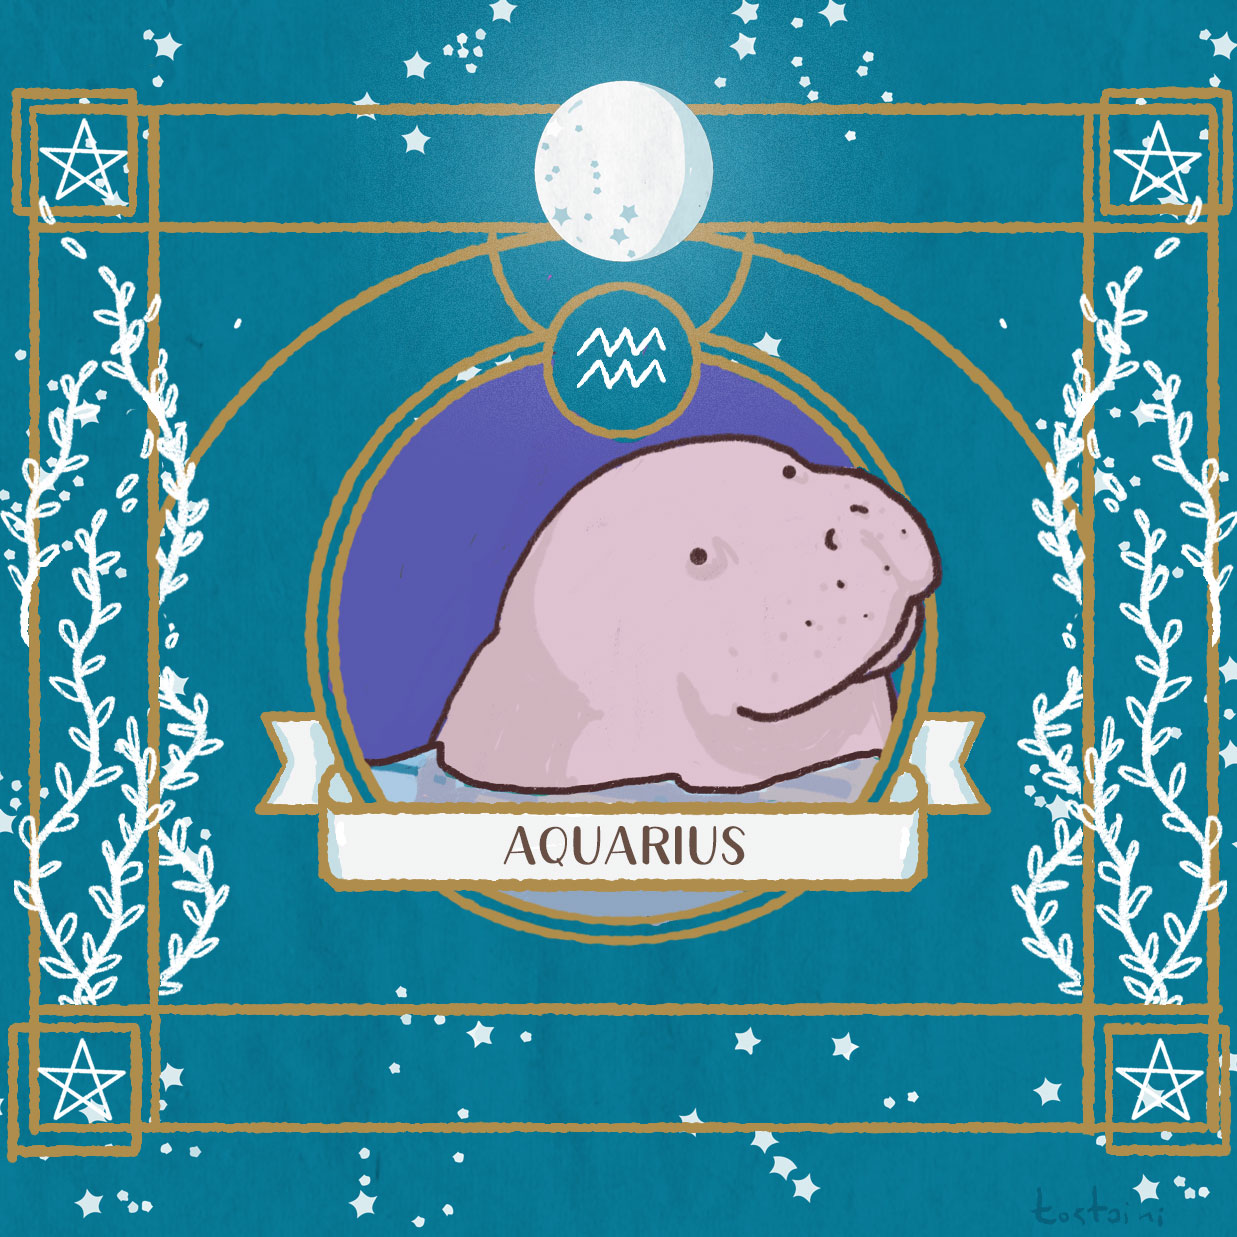 aquarius-manatee